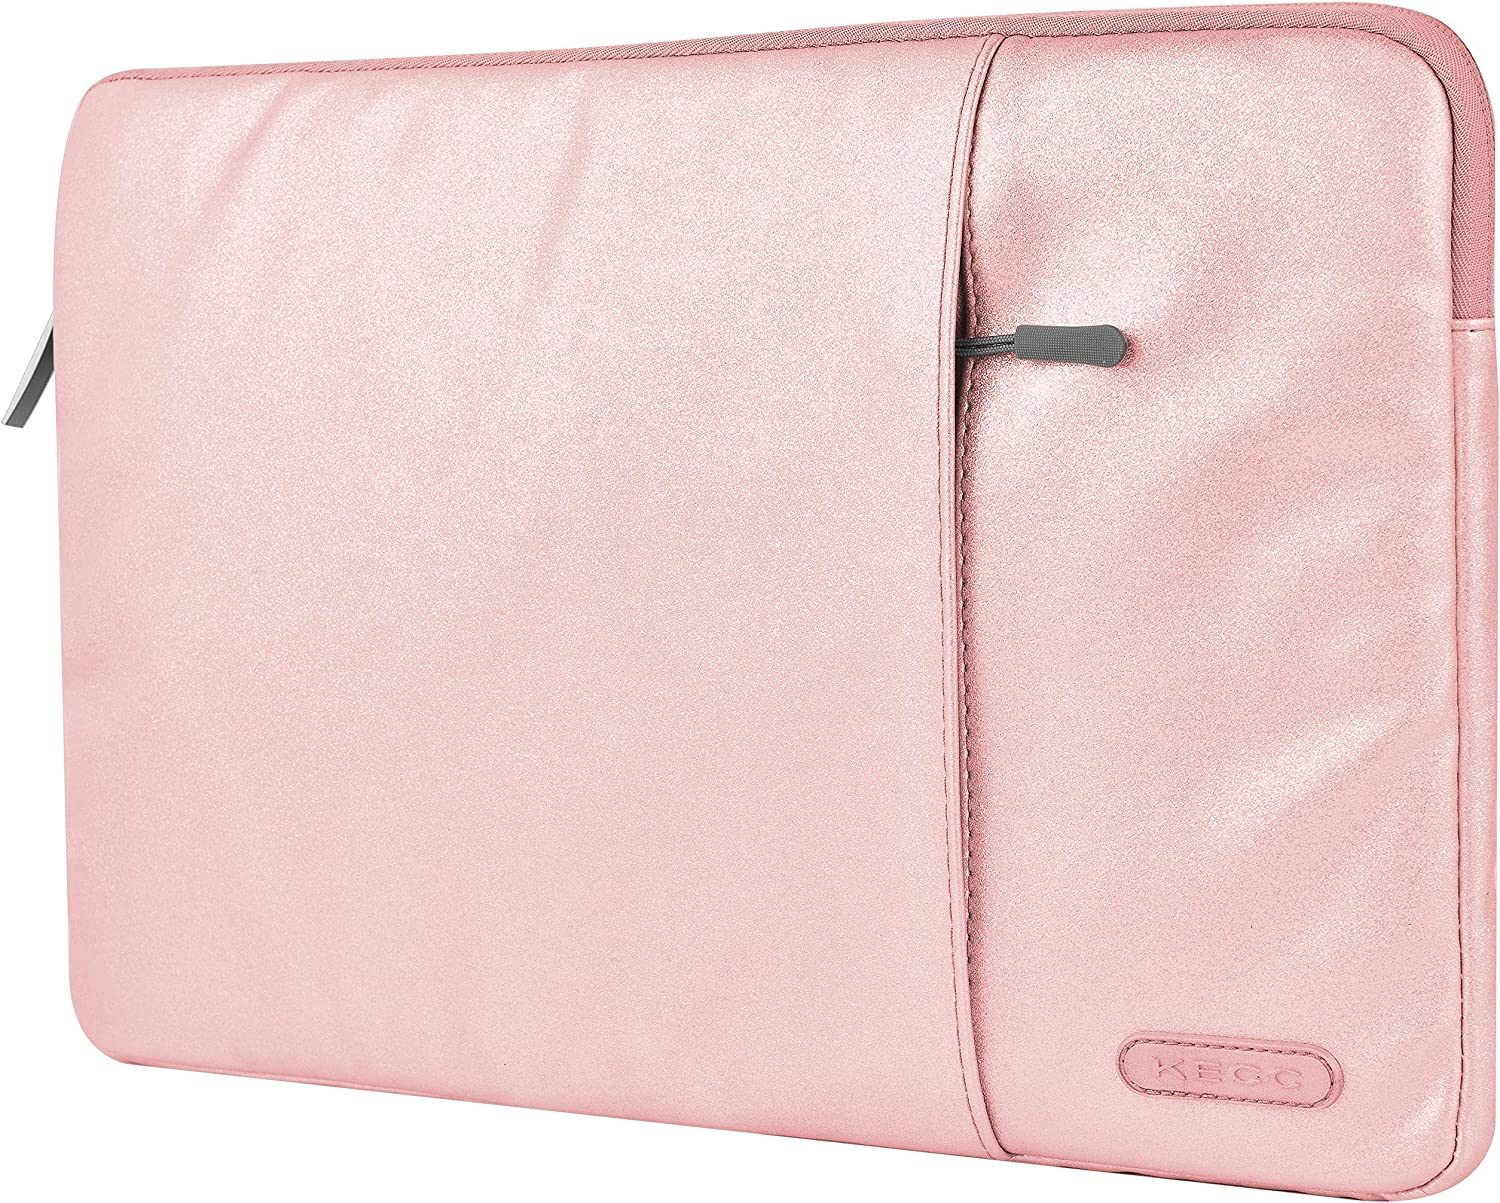 """KECC 15-15.6"""" Sleeve for MacBook Pro 15"""" A1990/A1707/A1398/A1286 Laptop Protective Case Canvas Bag with Pocket for Chromebook, Acer Notebook (Champane Glitter)"""